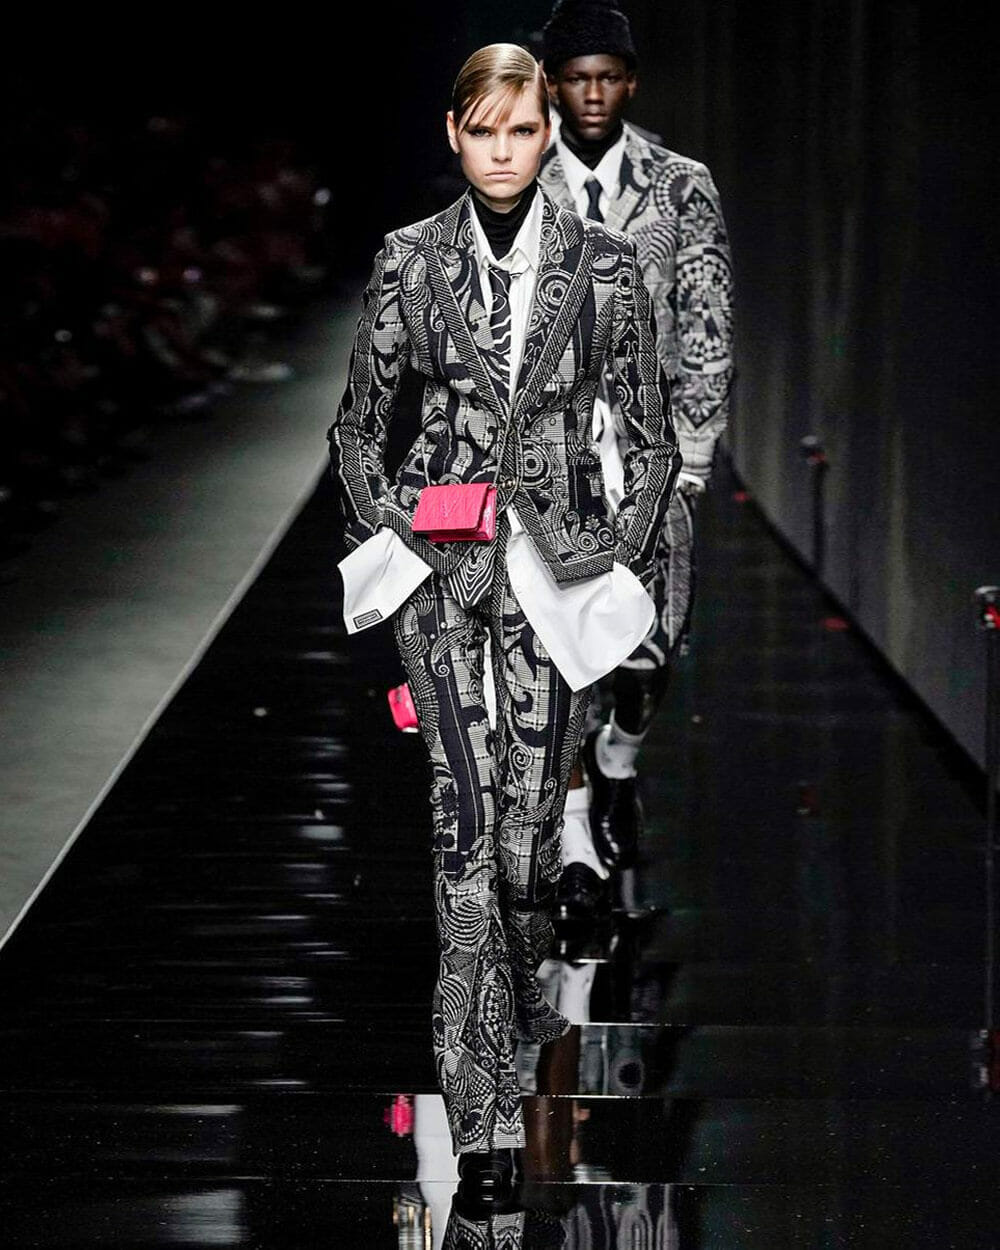 Versace women's and men's collections on the runway together for the first time 2020